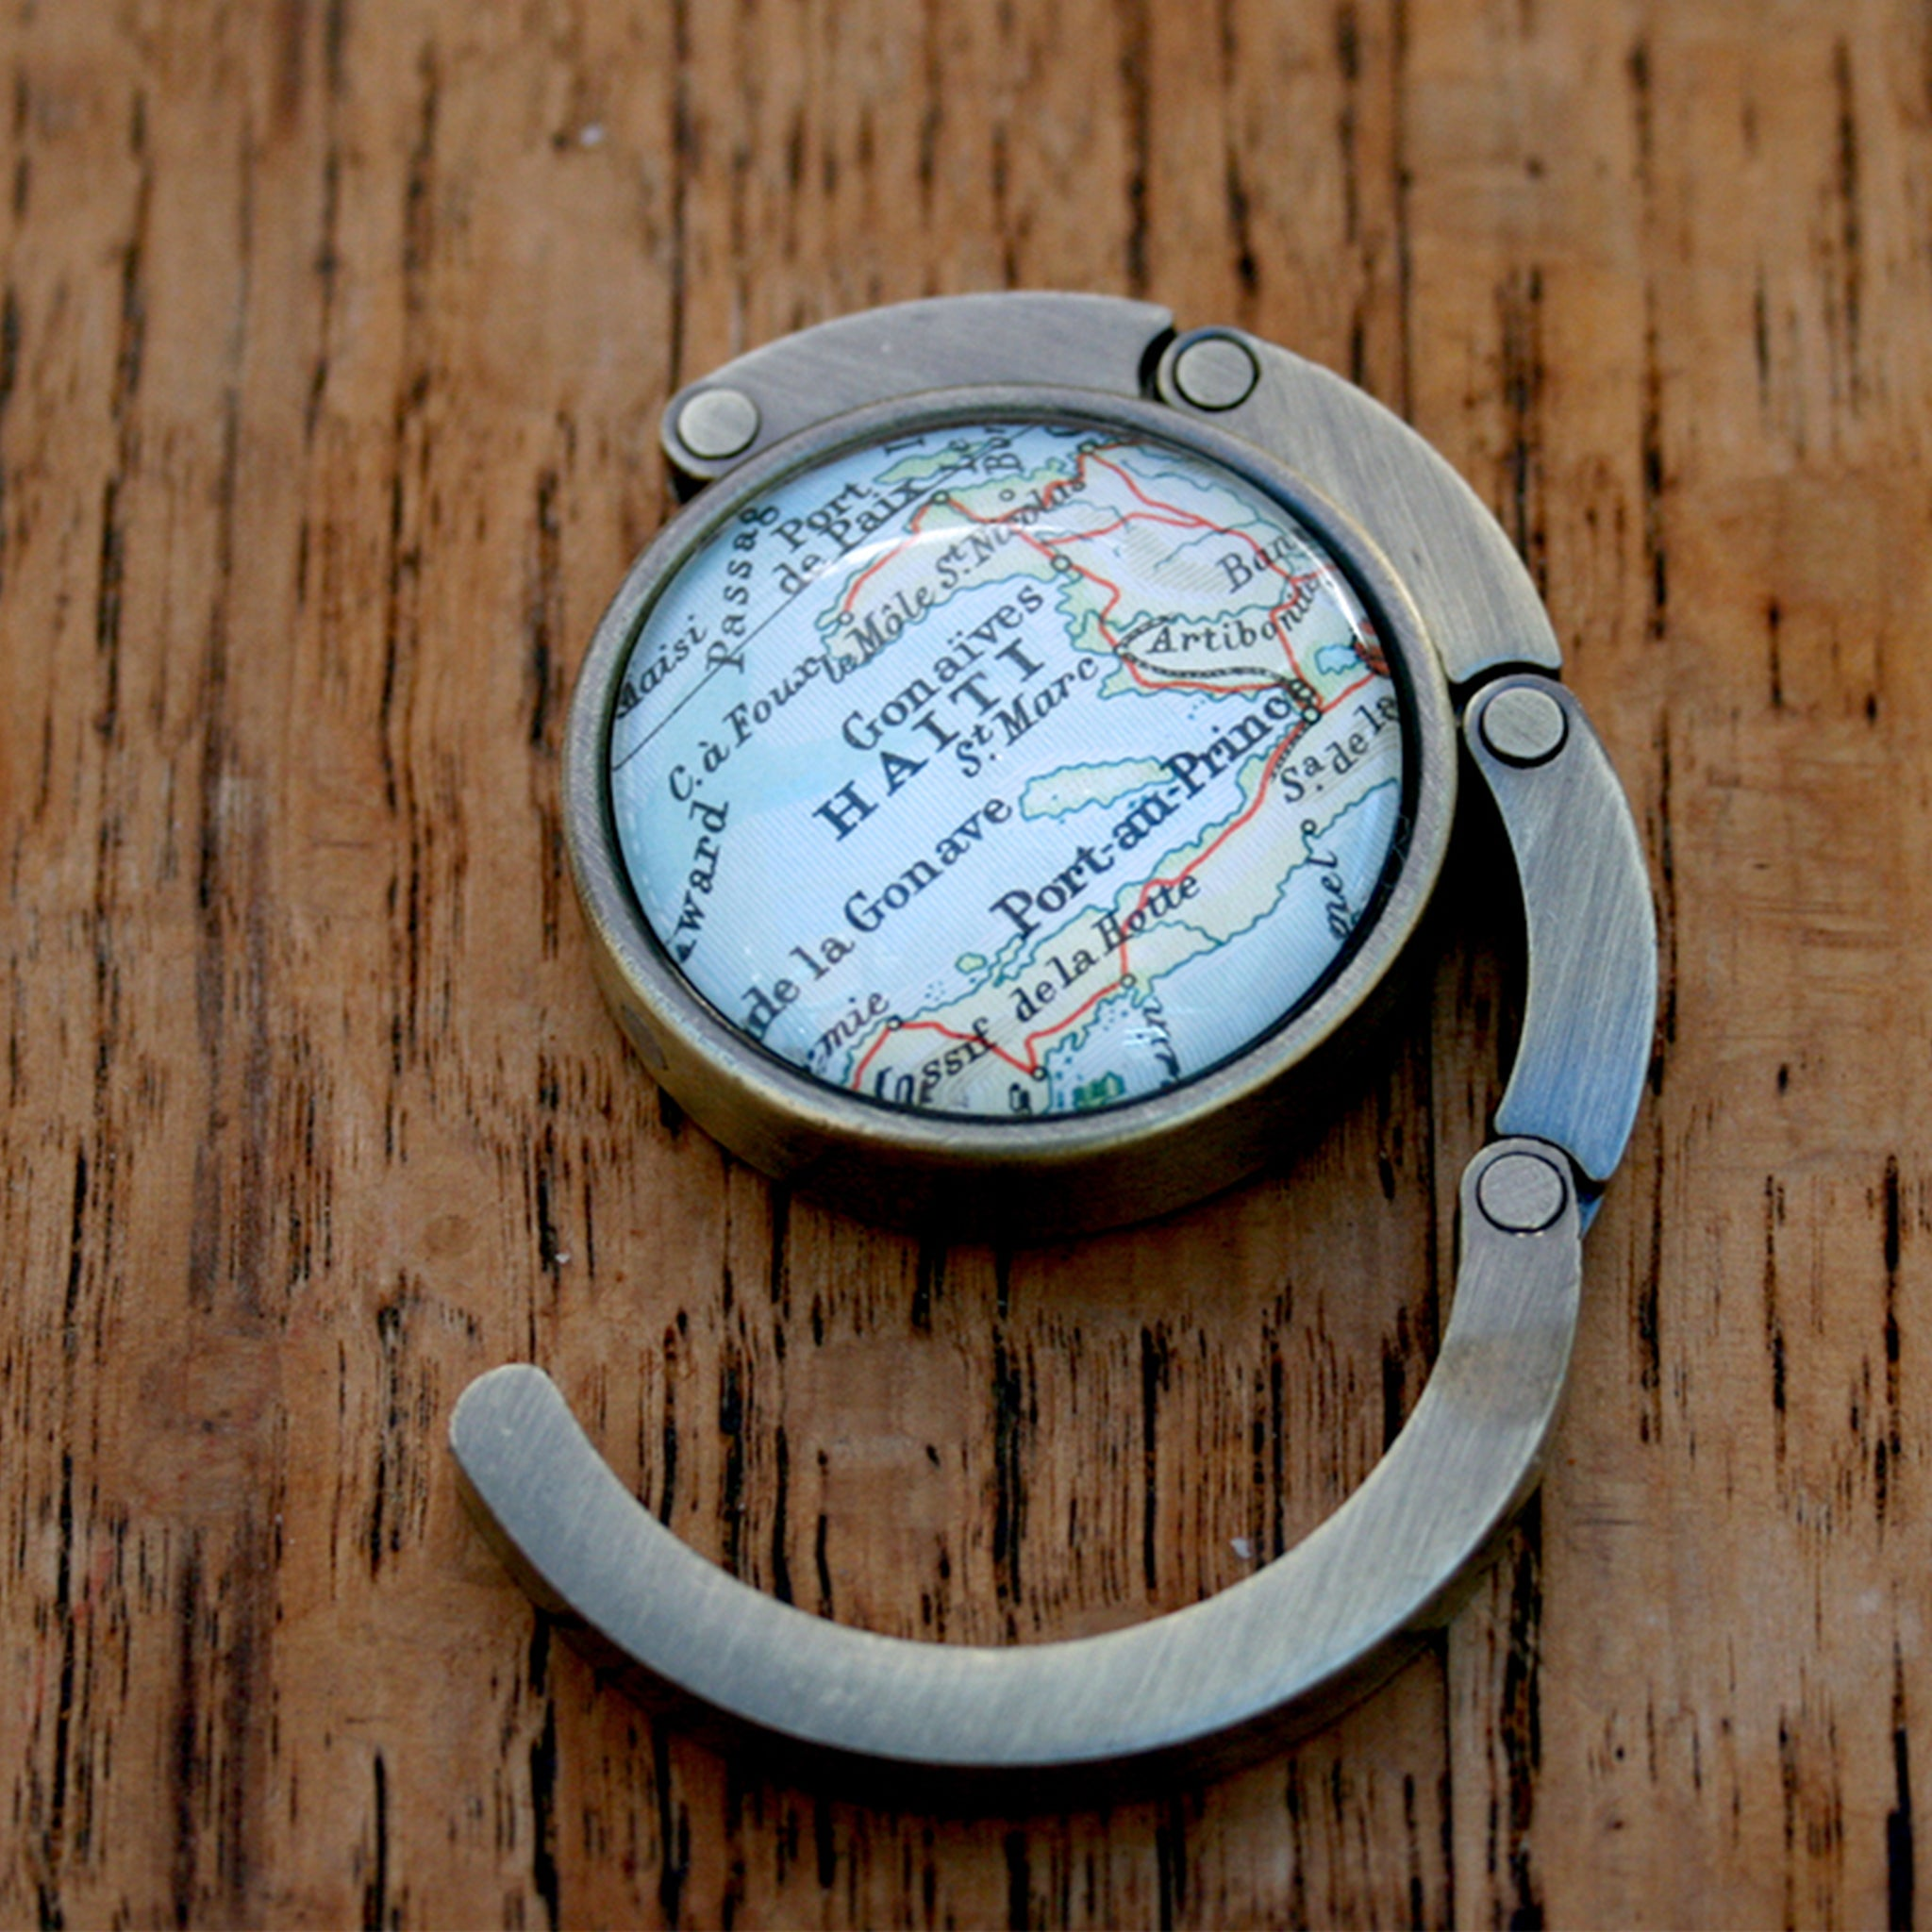 Purse hanger in bronze color featuring map of Haiti